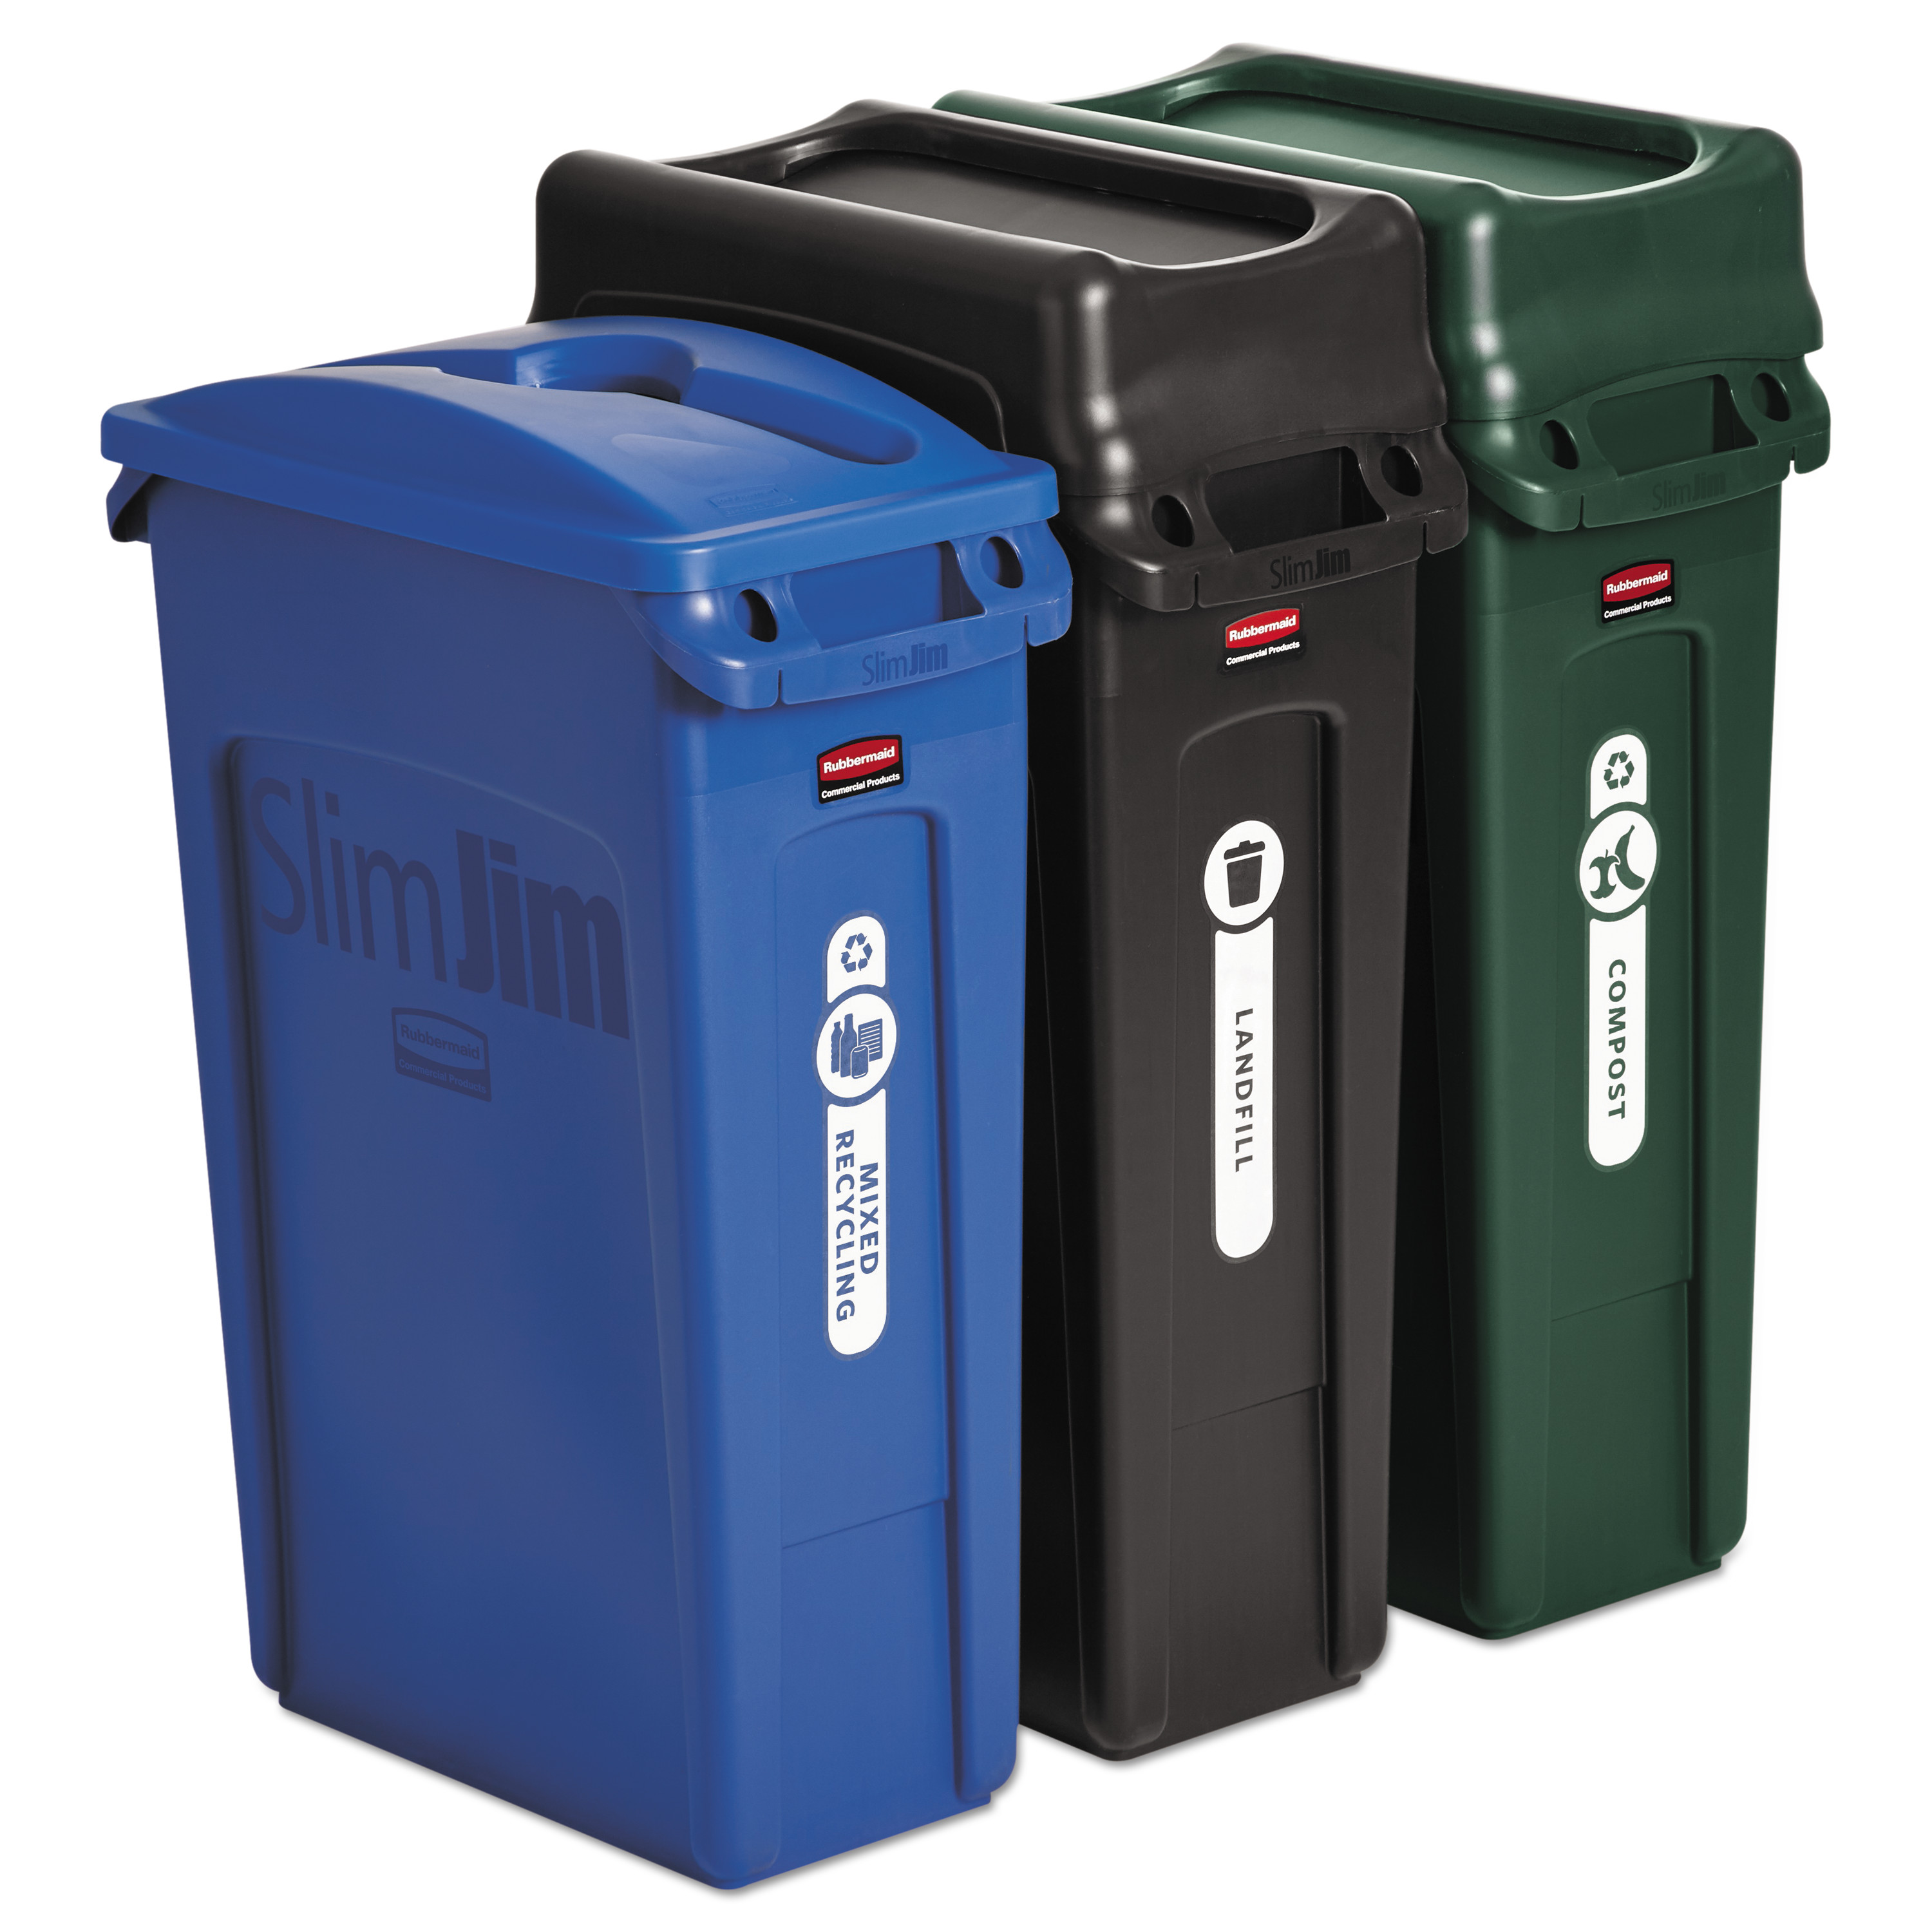 Rubbermaid Commercial Slim Jim Recycling Container, Rectangular, 23 gal, Black/Blue/Green